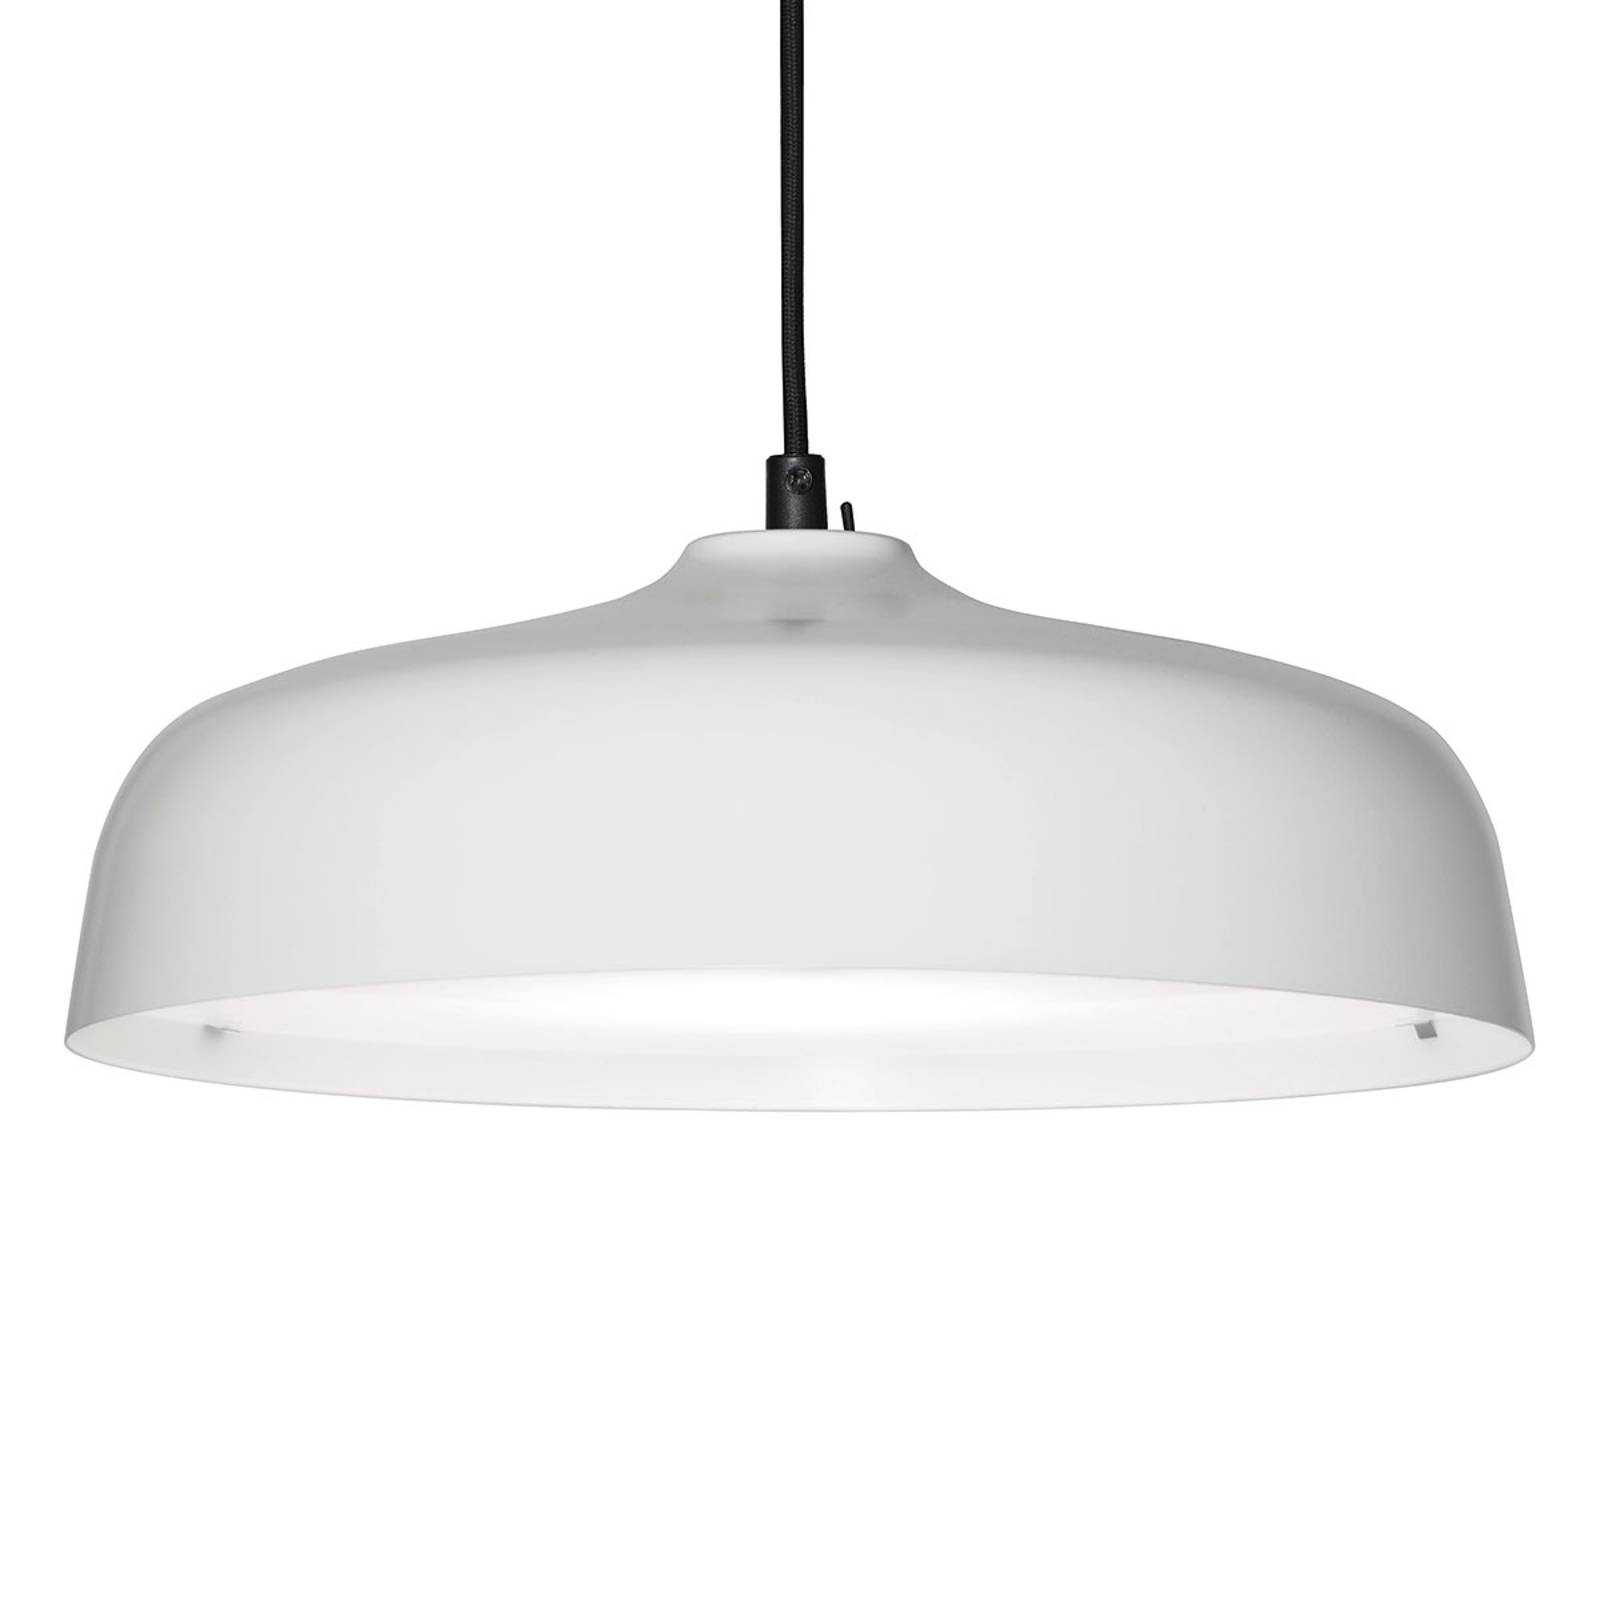 Innolux Candeo Air LED-Pendelleuchte weiß